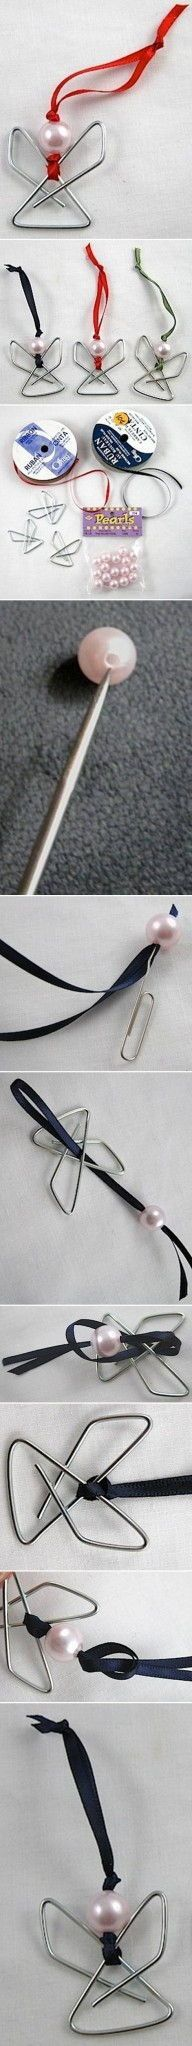 DIY Paper Clip Angel DIY Projects